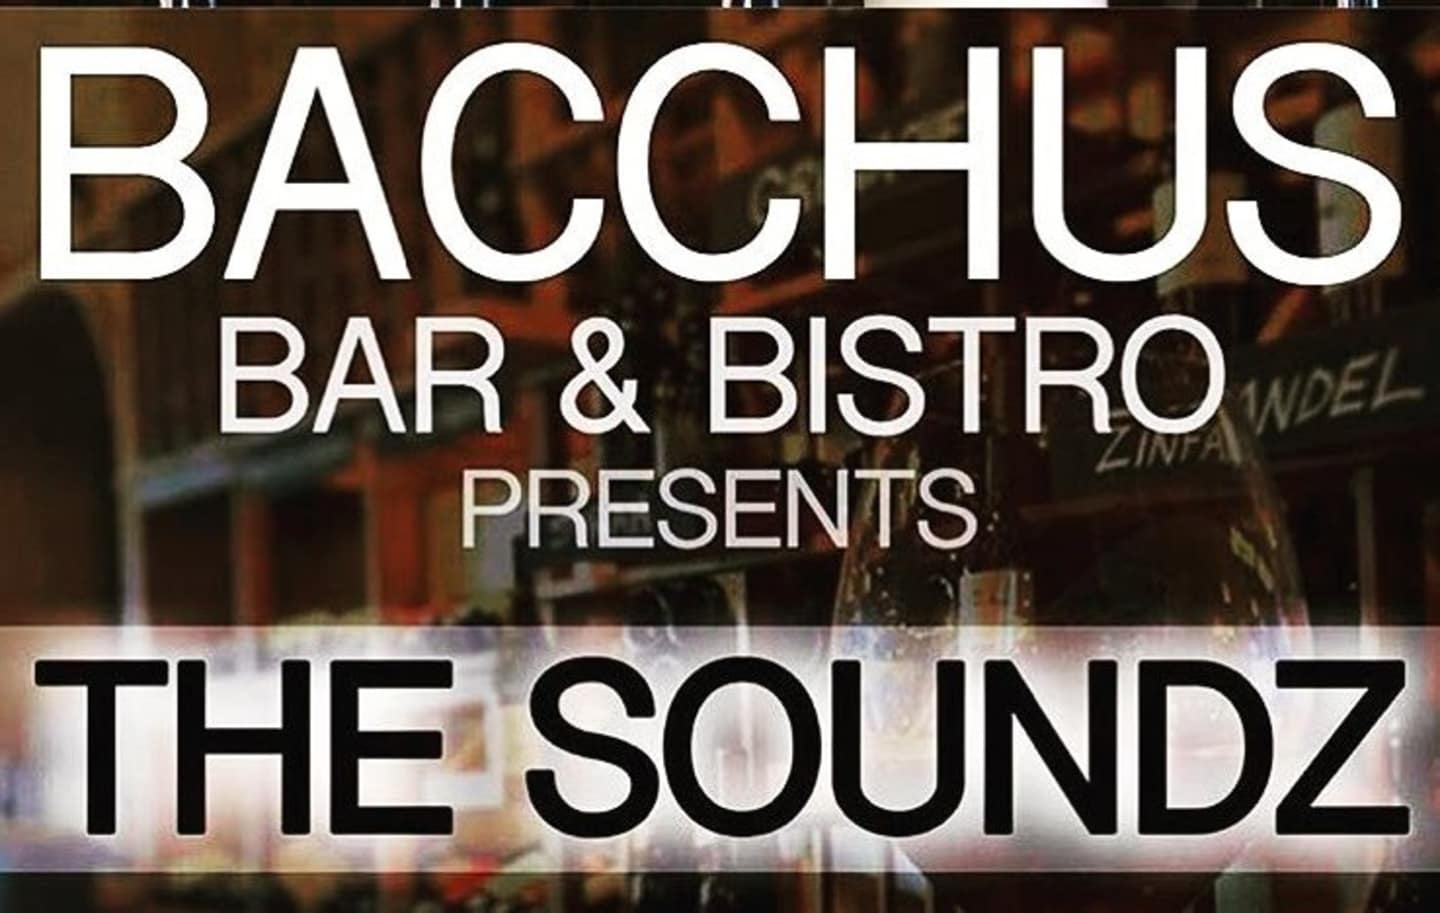 Friday, July 27th Live Music with The Soundz